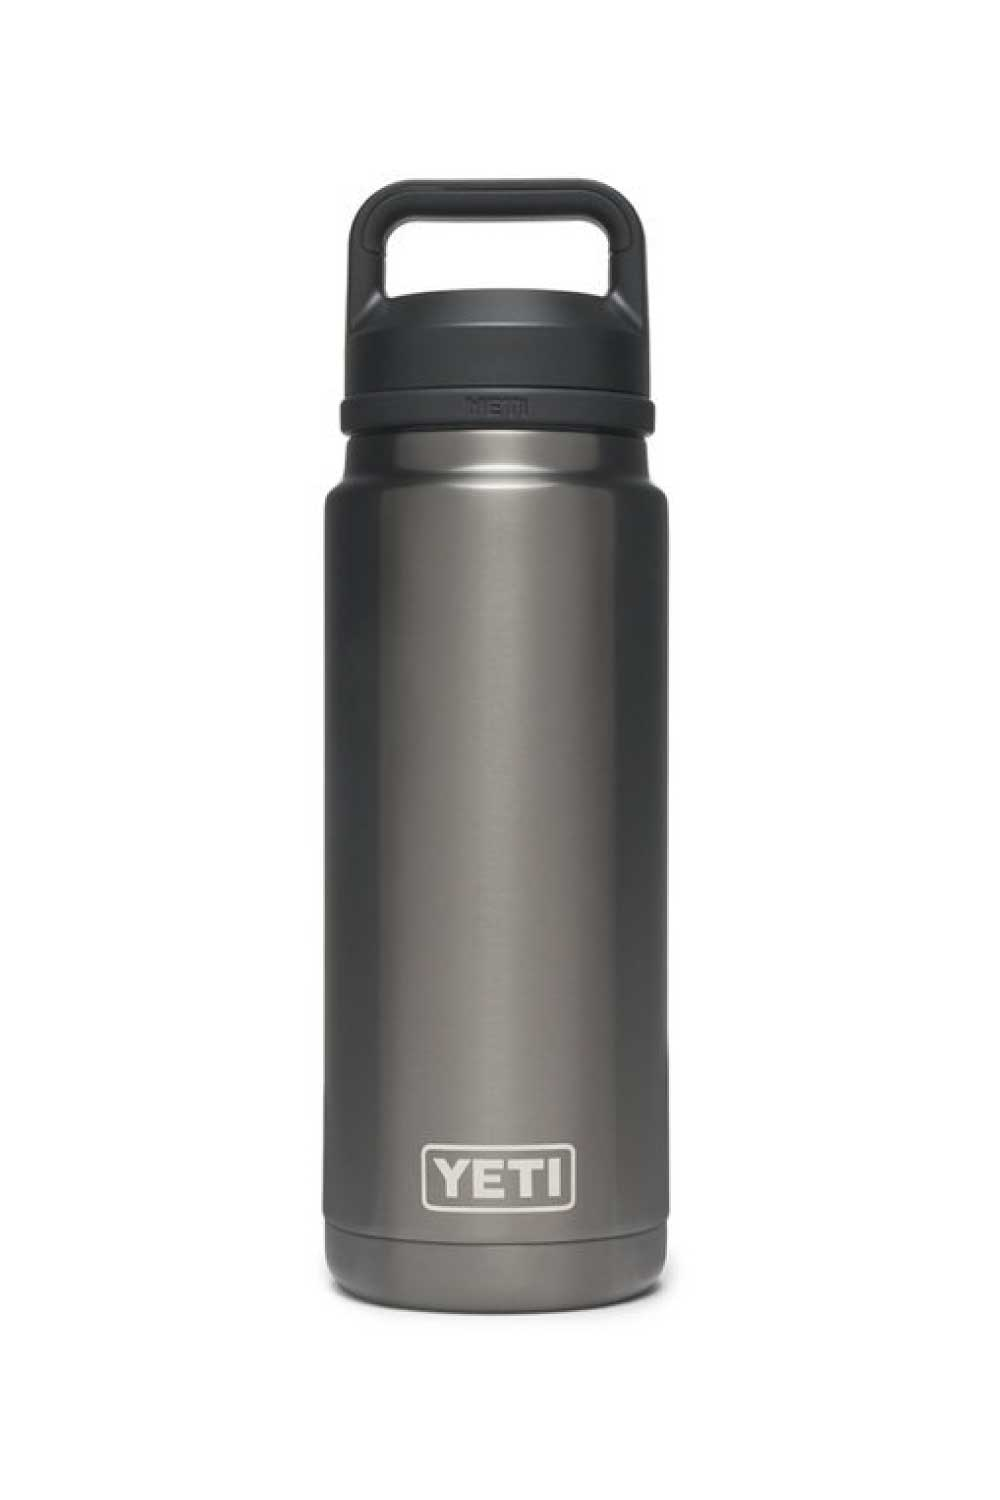 YETI Rambler 26oz Drink Bottle